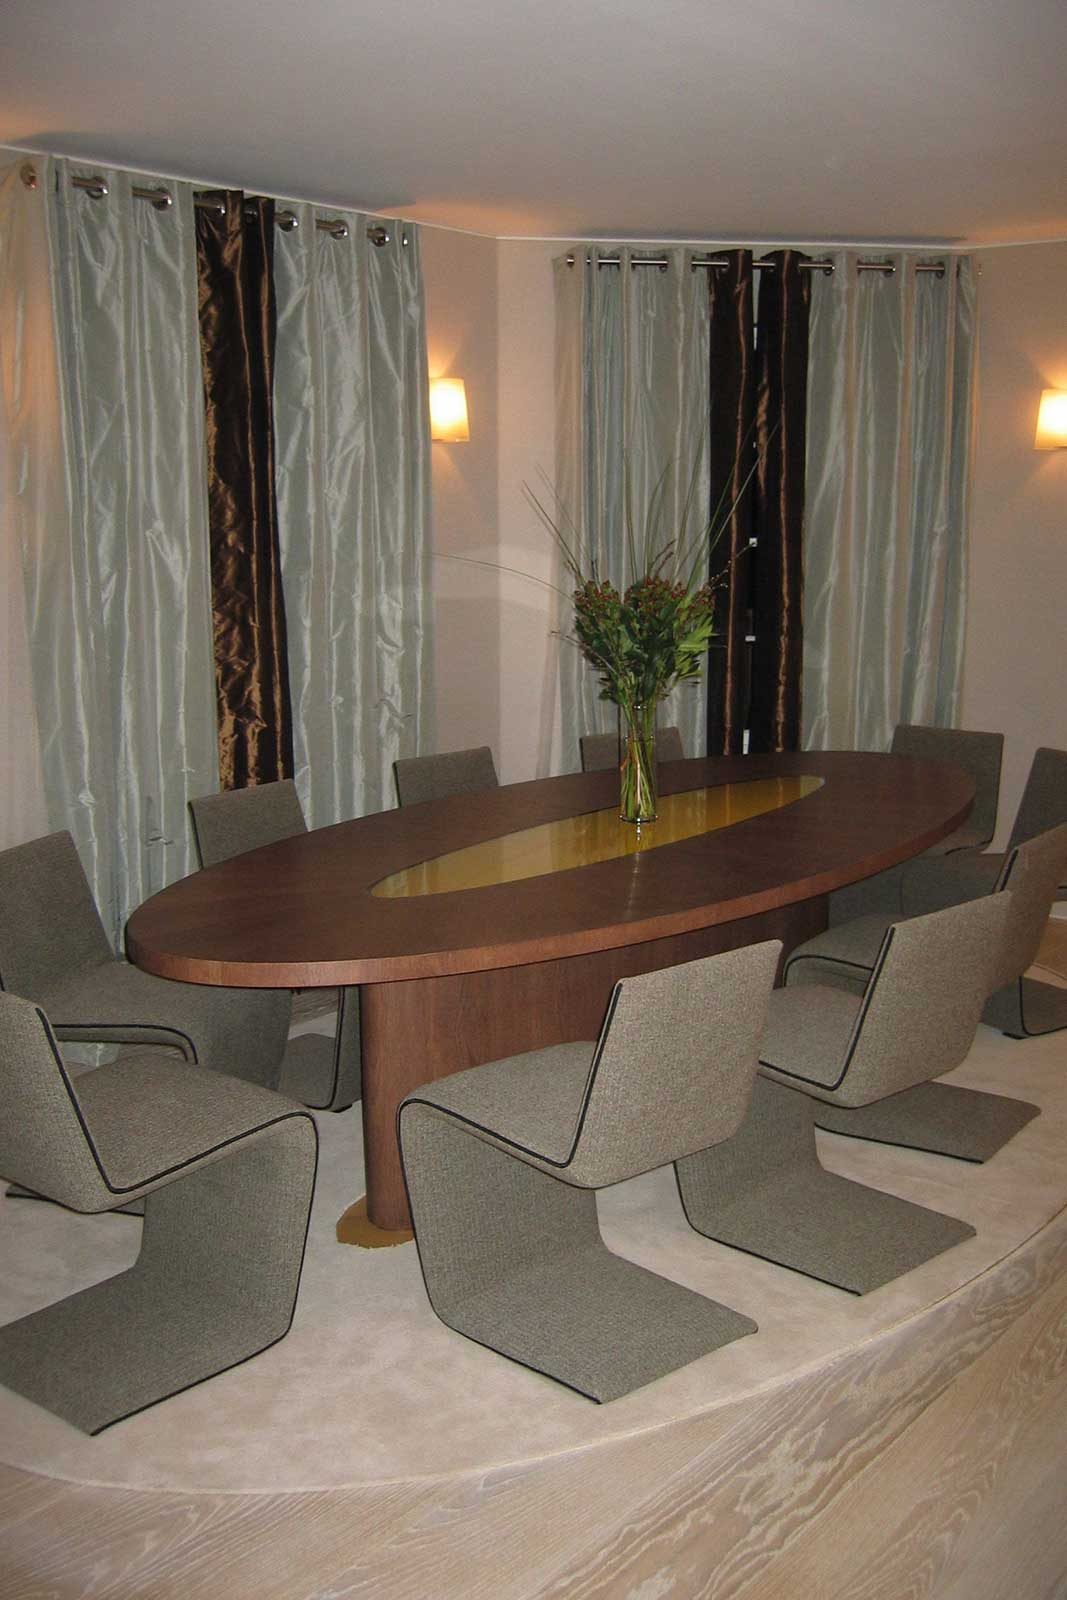 Dining Table with Bespoke Glass Table Insert